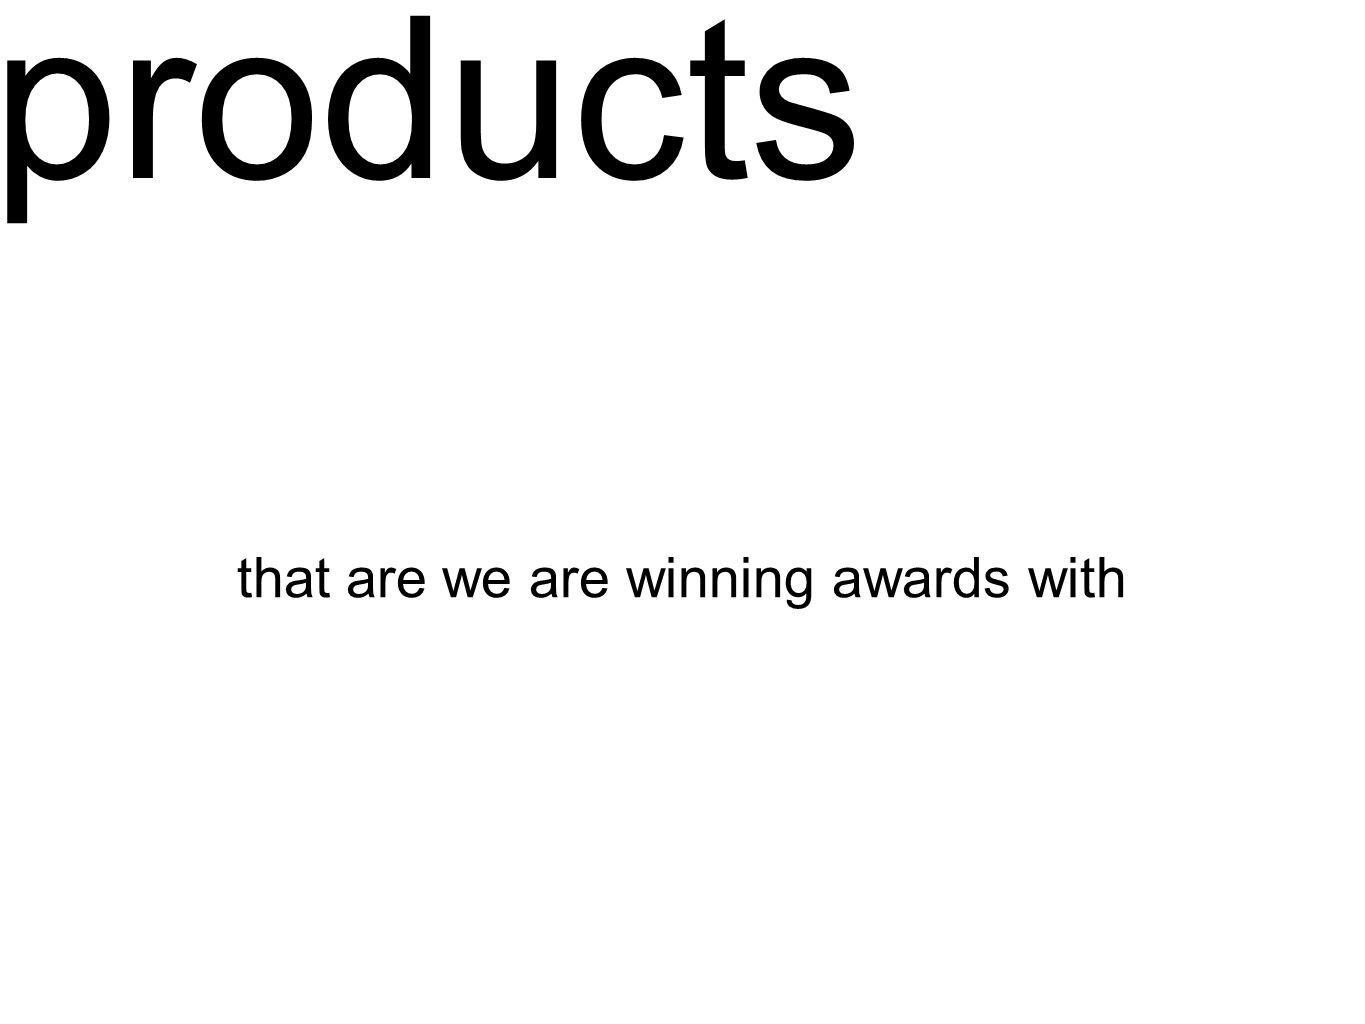 products that are we are winning awards with